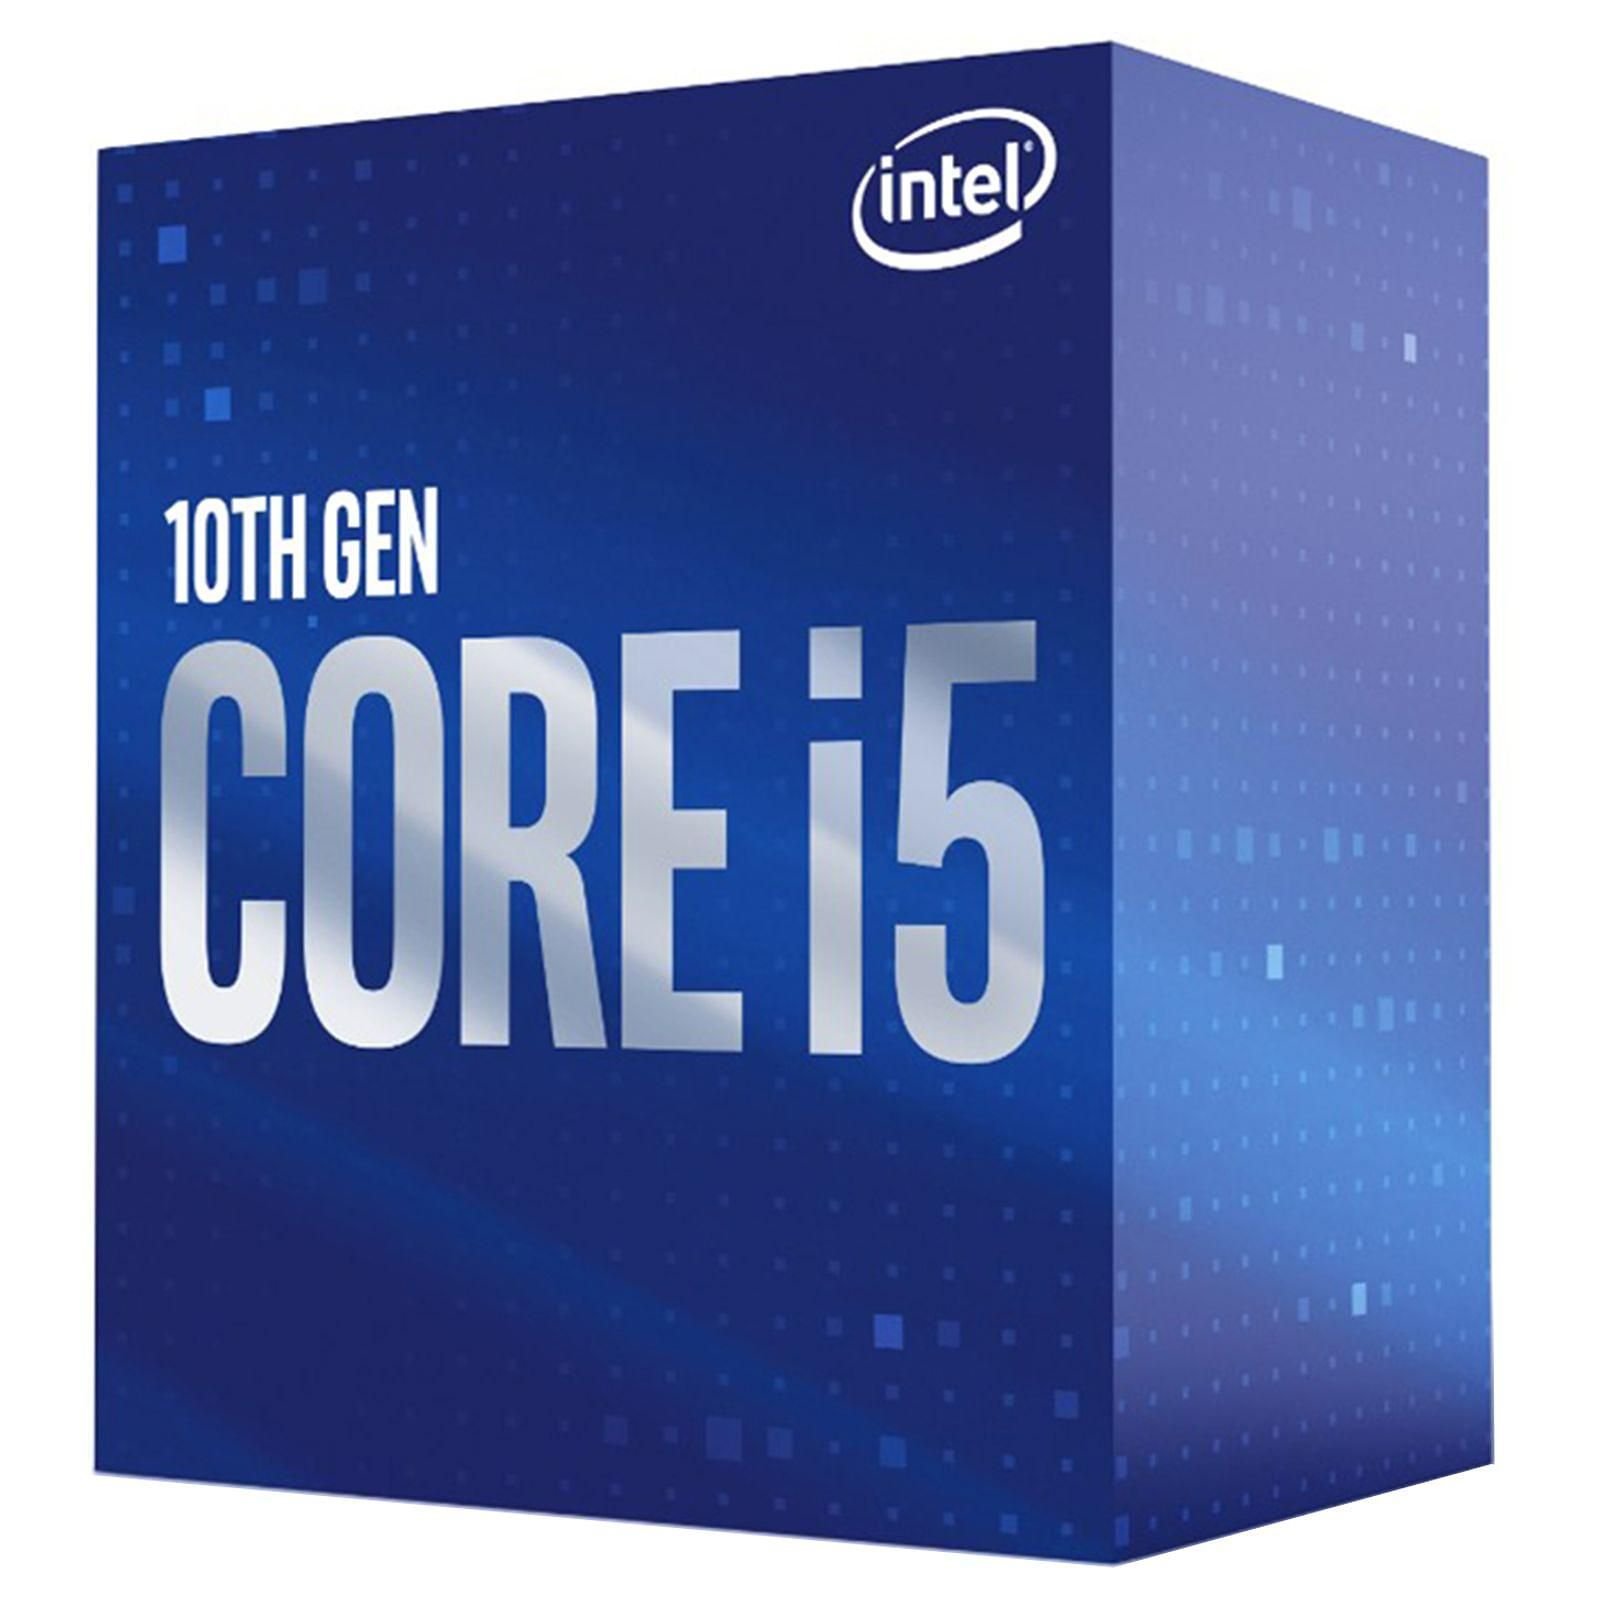 Intel Core i5-10500 - 3.1GHz - Processeur Intel - Cybertek.fr - 1